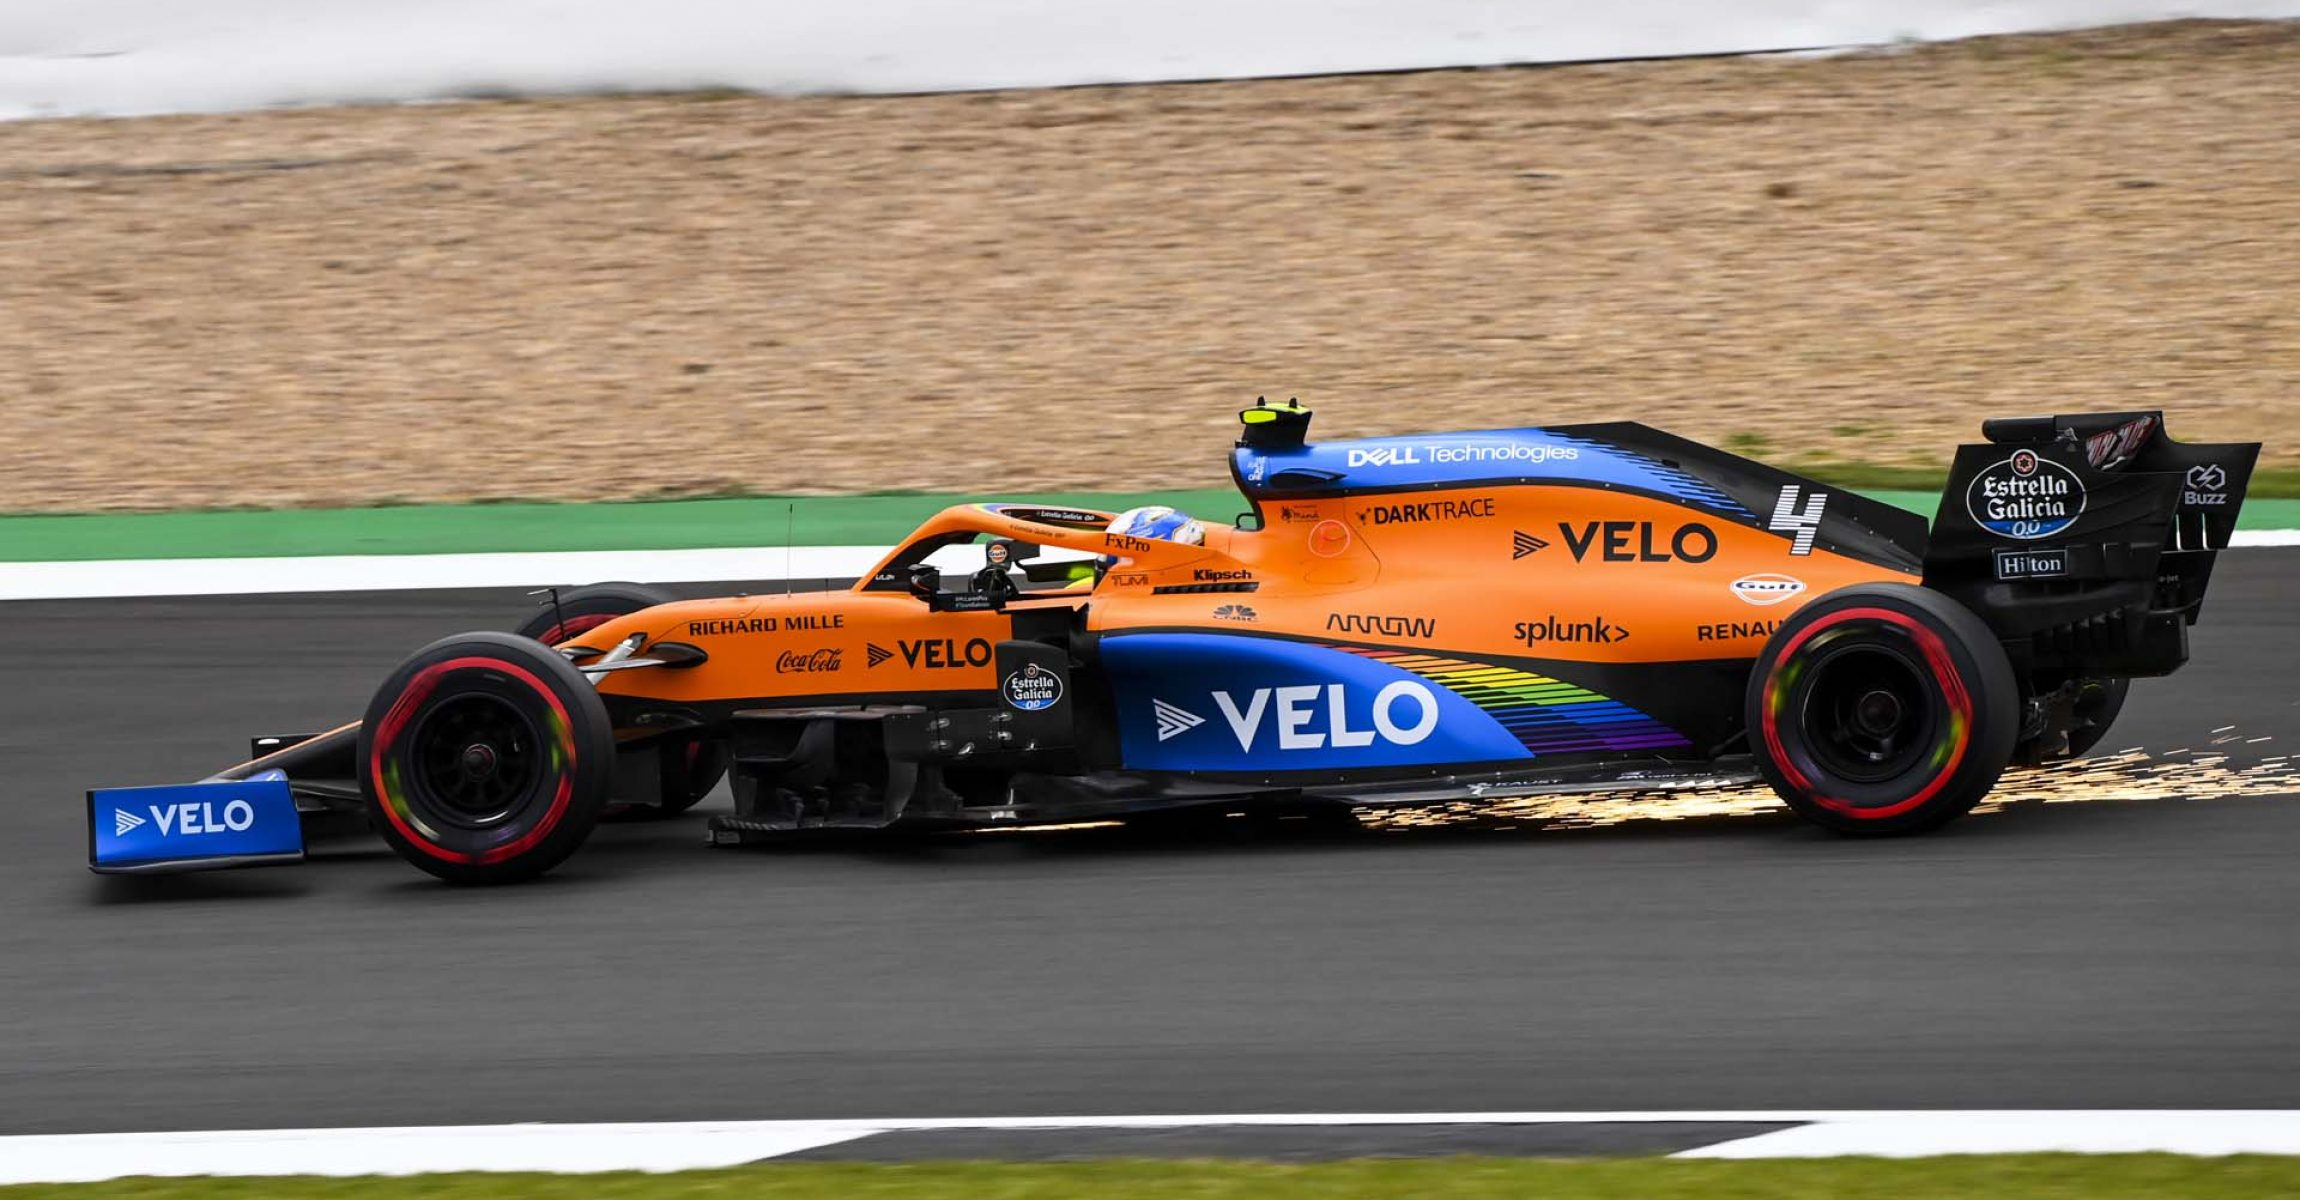 Sparks under the car of Lando Norris, McLaren MCL35